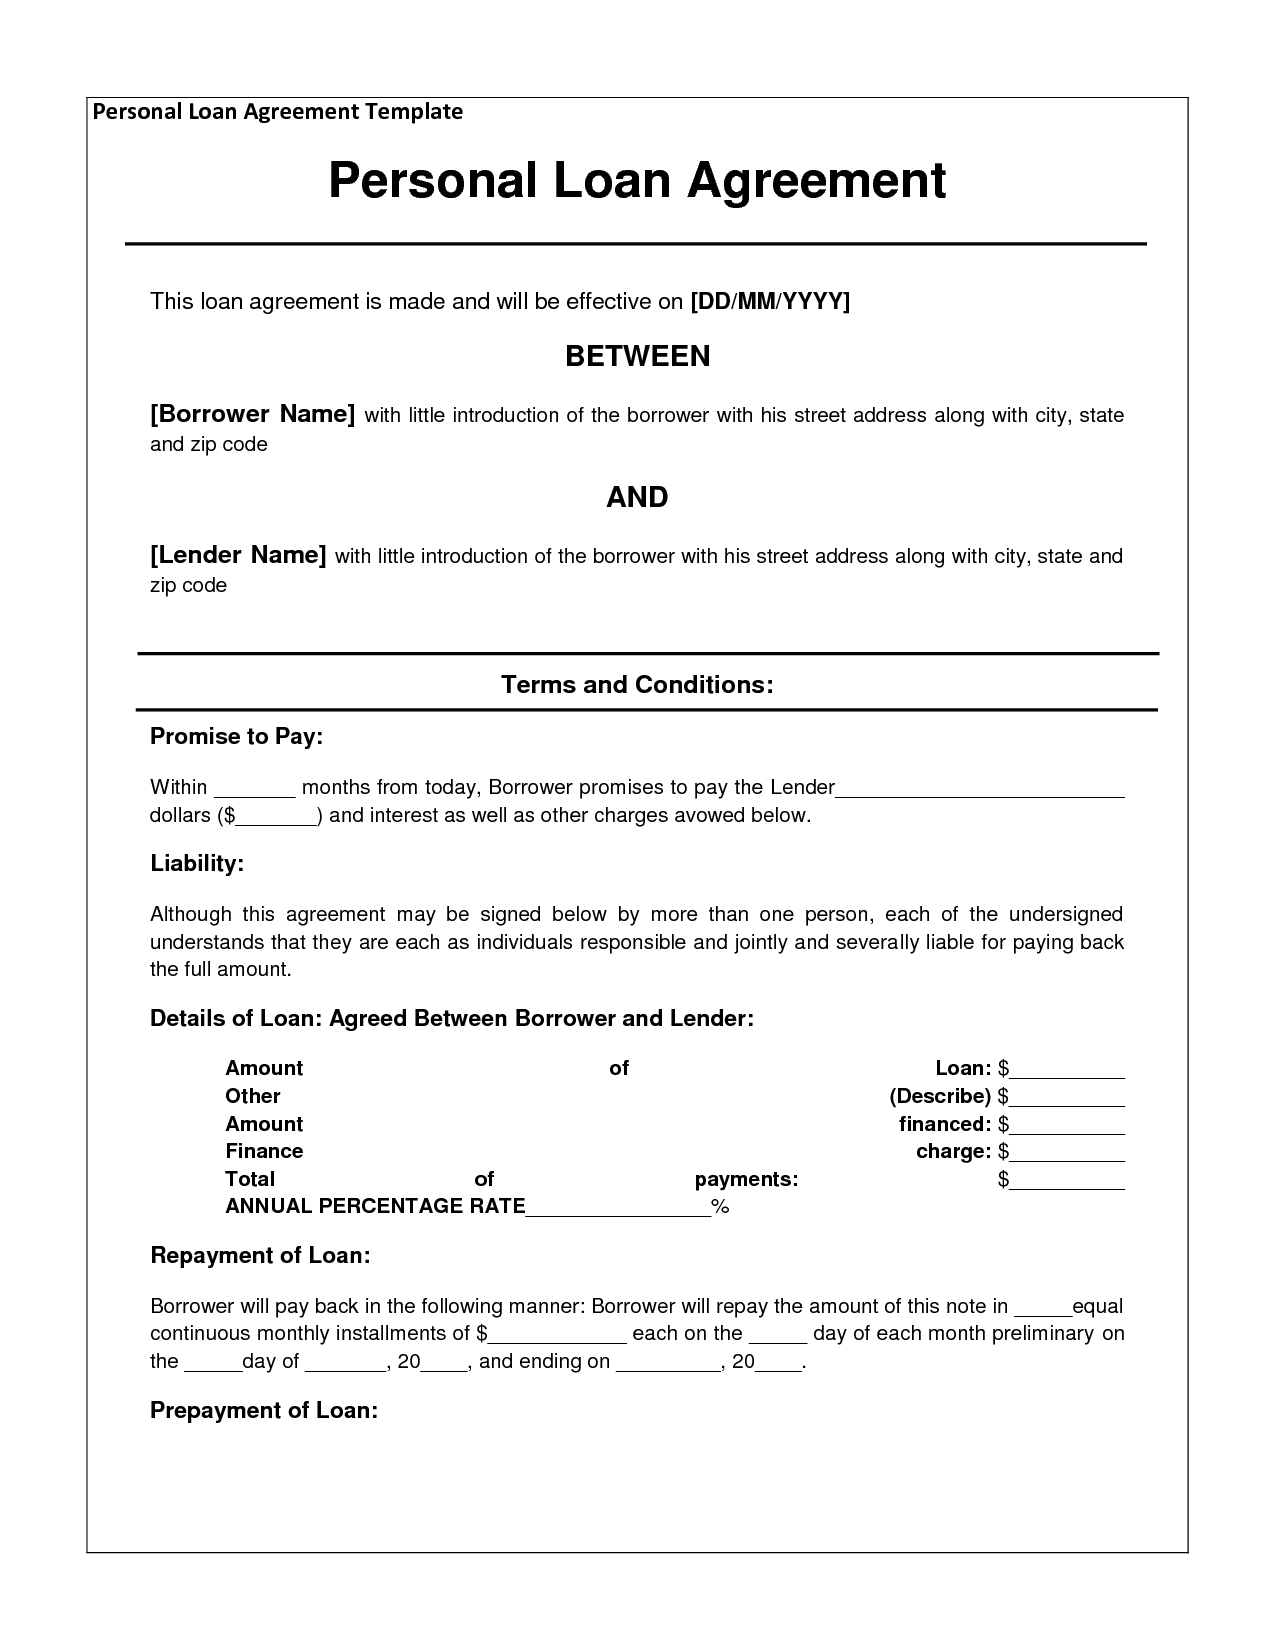 Personal Loan Letter Template - Free Personal Loan Agreement form Template $1000 Approved In 2